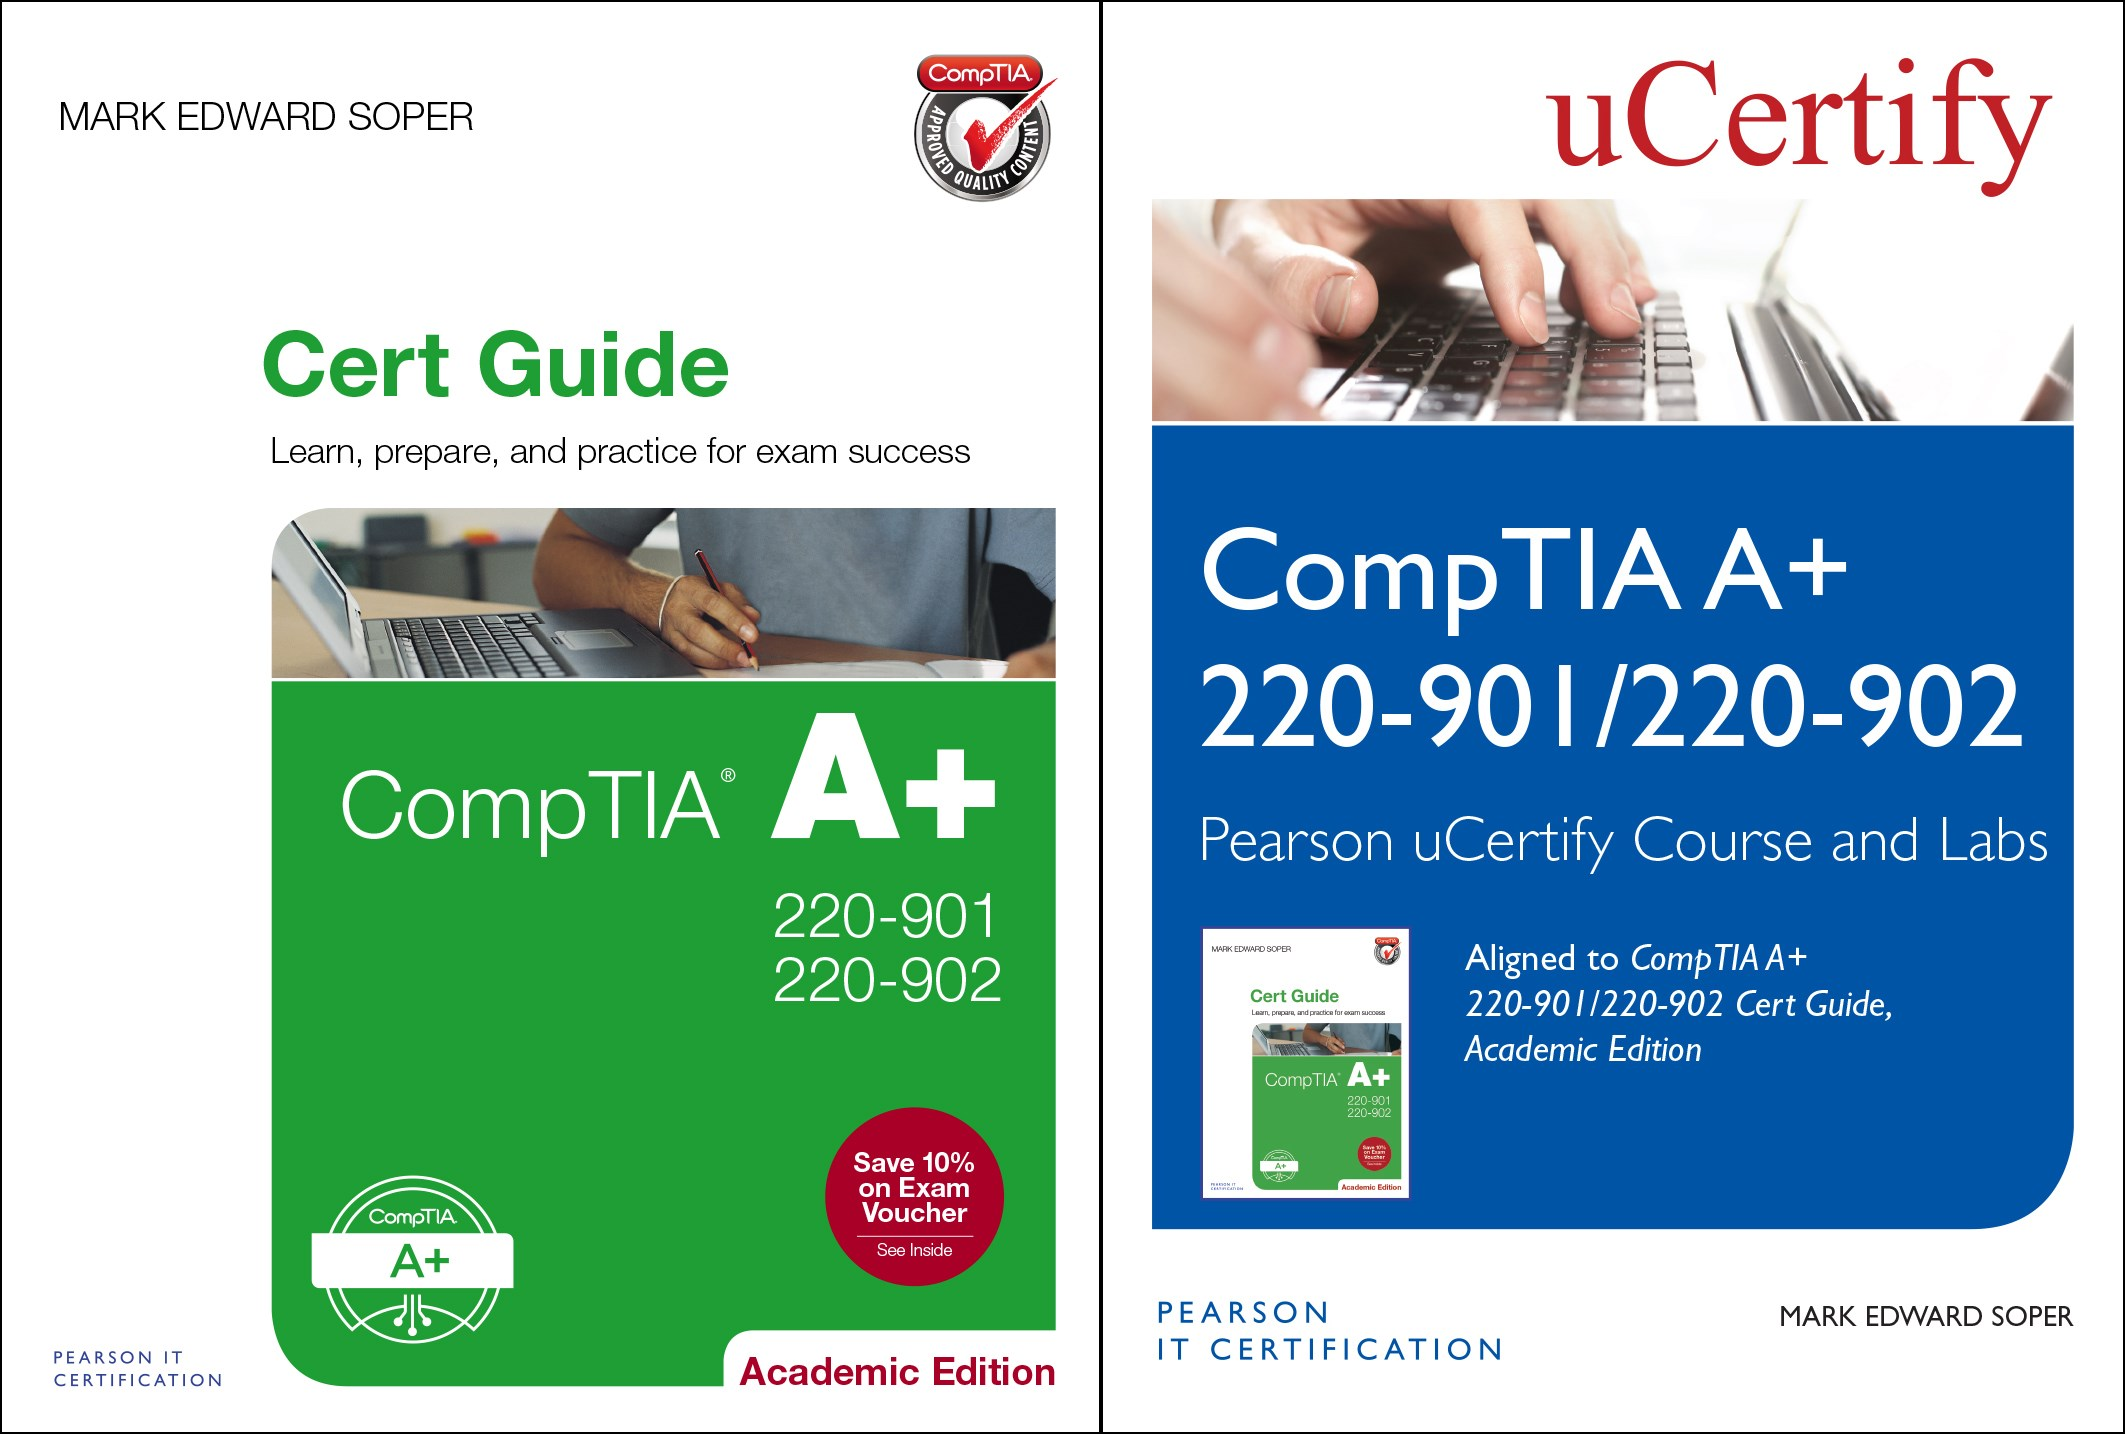 CompTIA A+ 220-901 and 220-902 Cert Guide, Academic Edition Textbook and Pearson uCertify Course and uCertify Labs